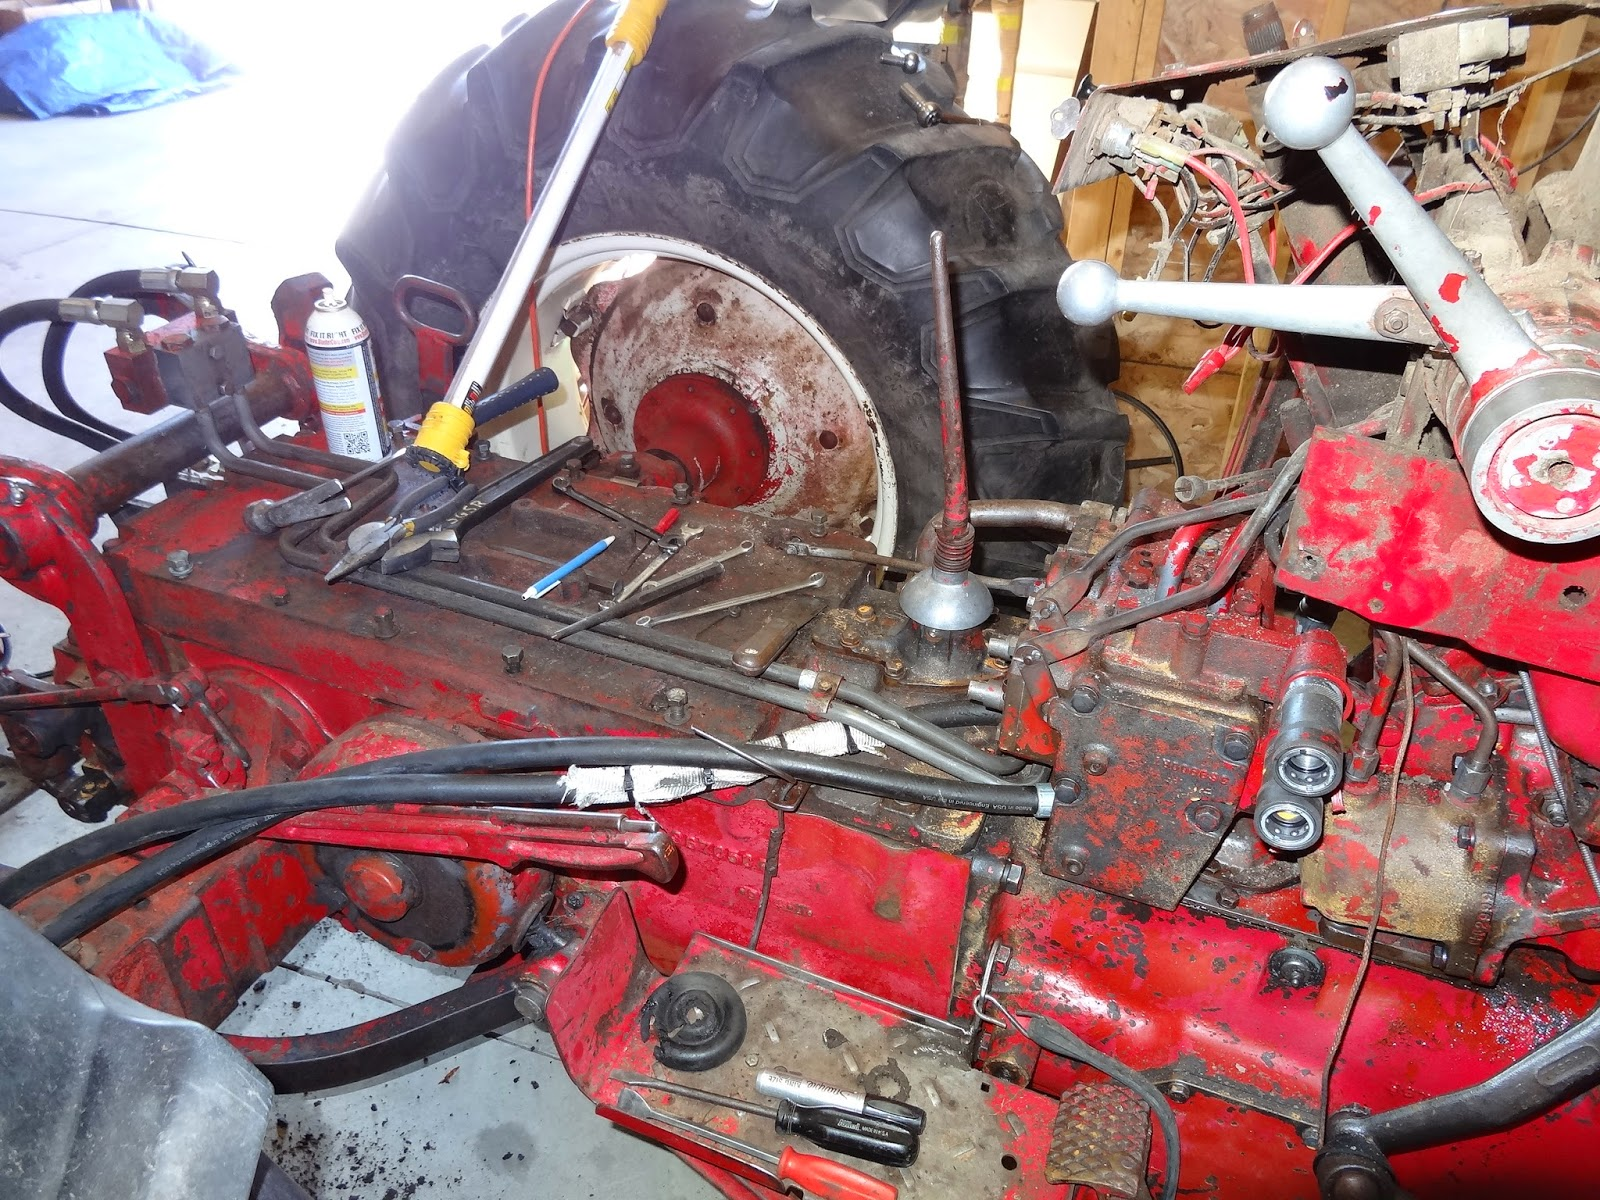 International 460 Utility tractor strip down